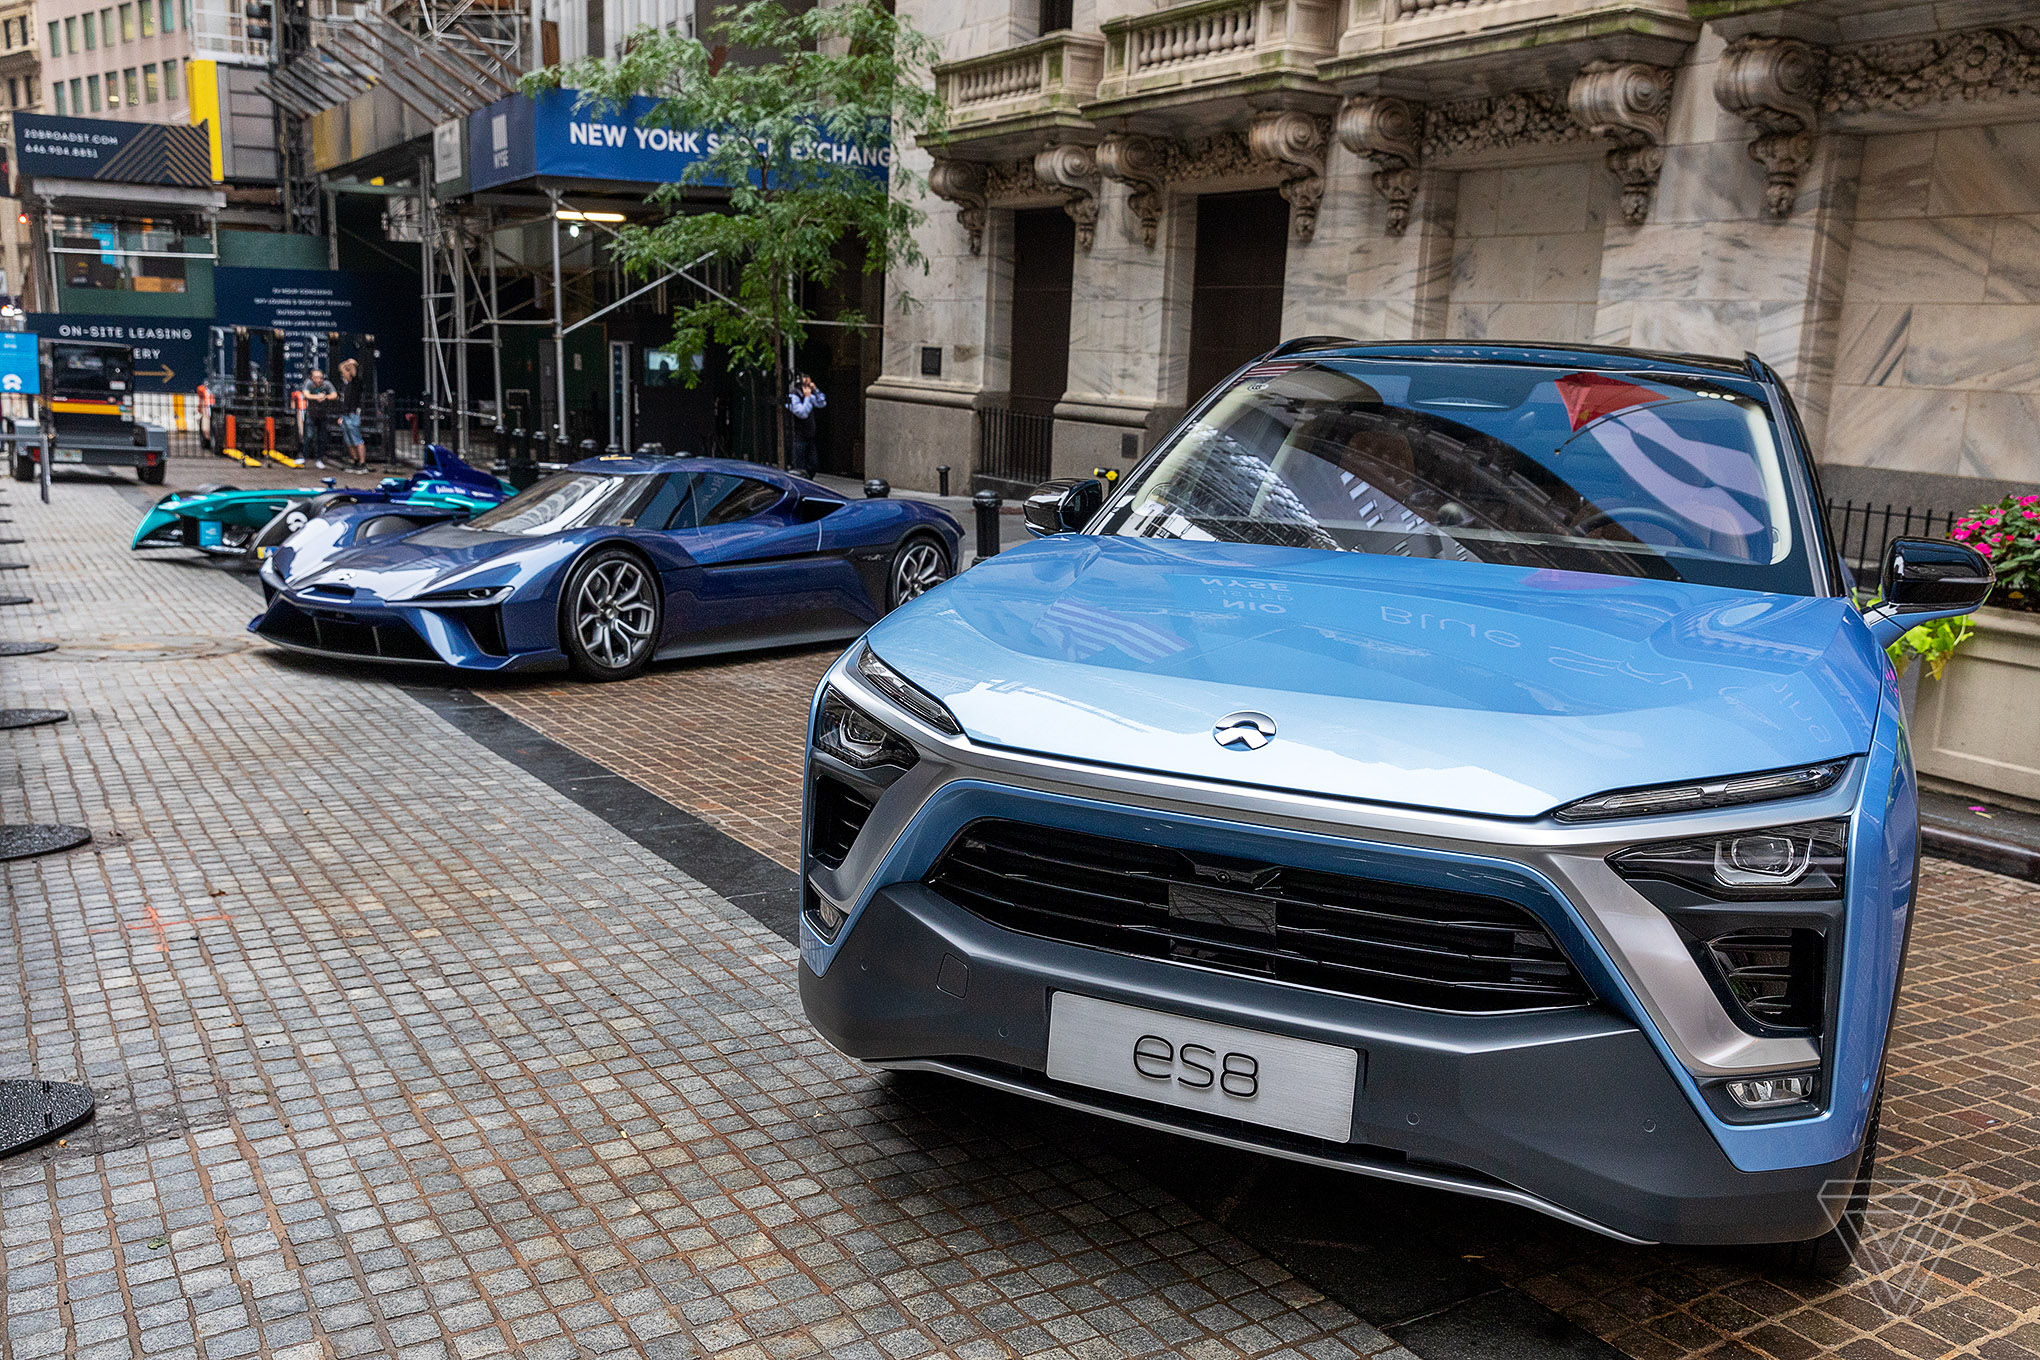 NIO has laid off 70 employees and closed an office in Silicon Valley